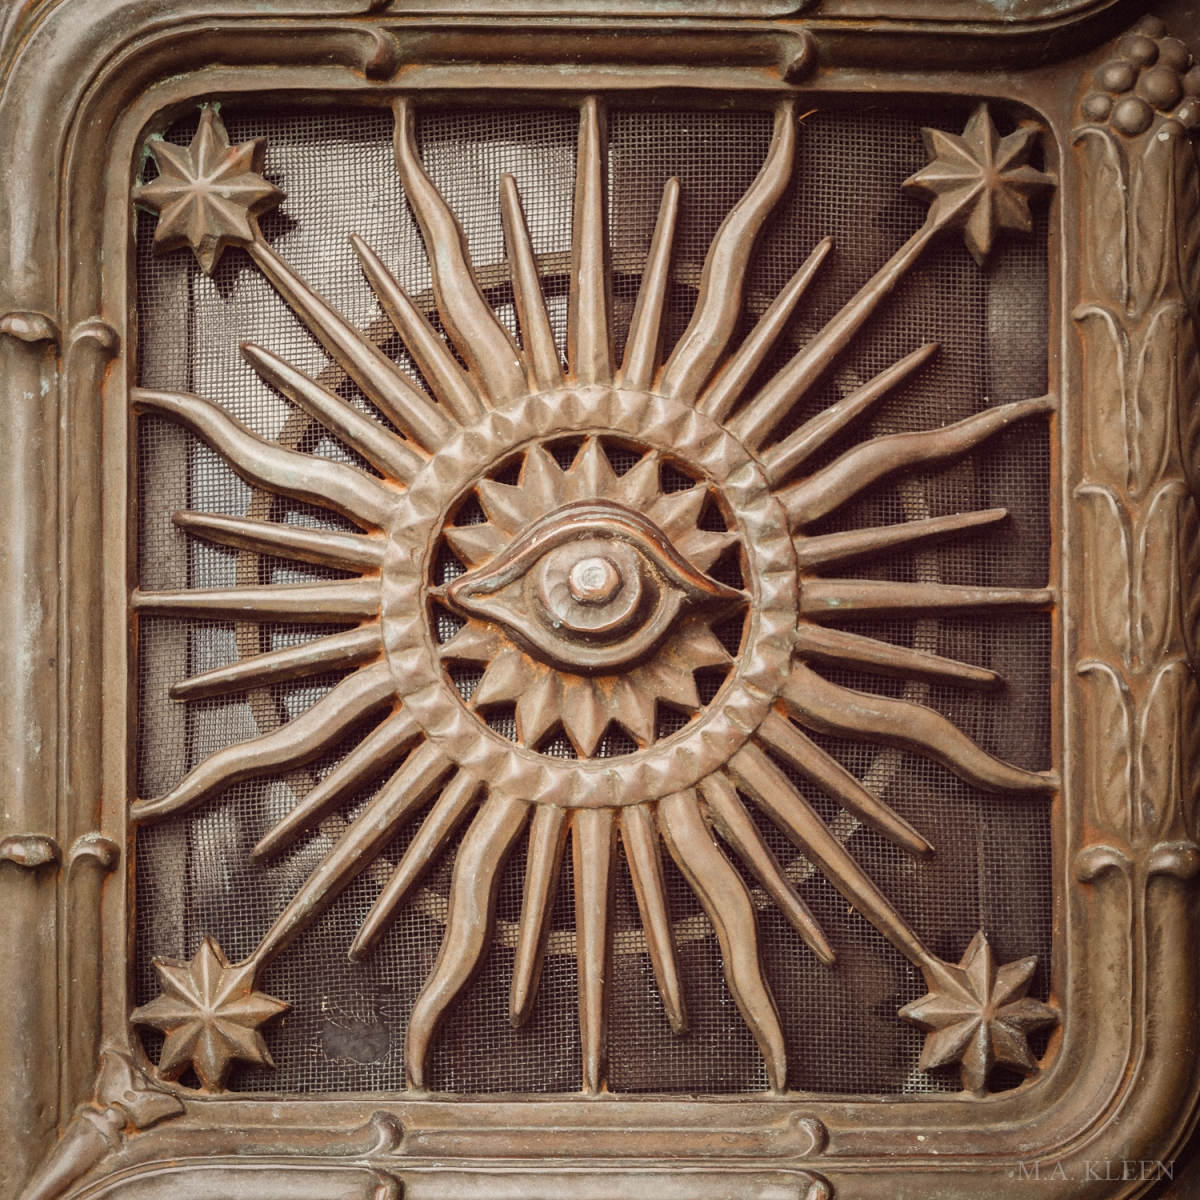 Detail on the door of a neoclassical mausoleum for Louis Schwitzer (1880-1967) and Sophie Rampp Schwitzer (1889-1935) at Crown Hill Funeral Home and Cemetery, 700 38th Street in Indianapolis, Indiana.